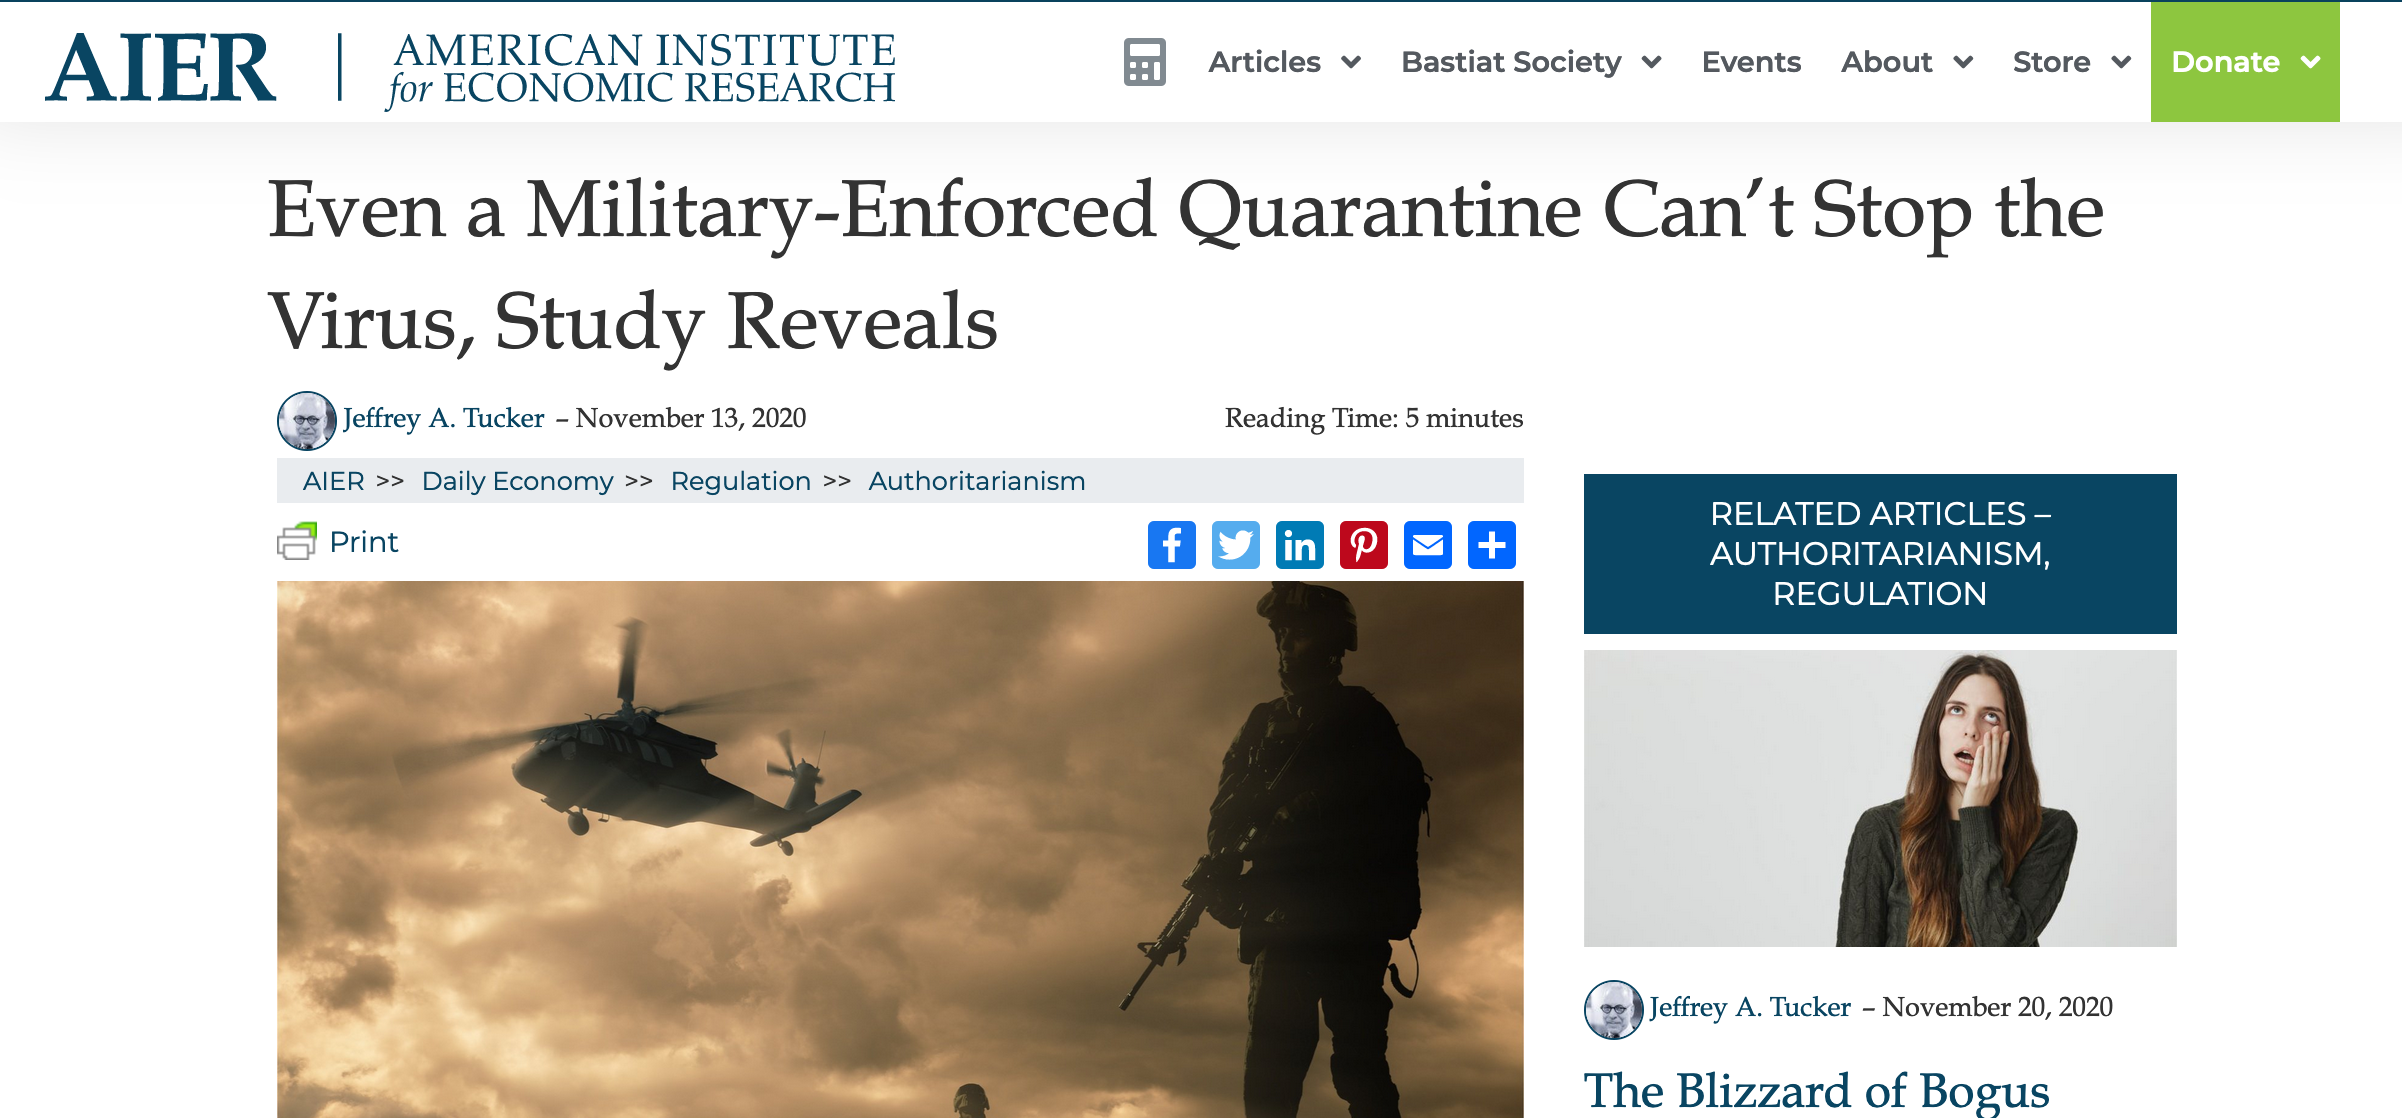 Even a Military-Enforced Quarantine Can't Stop the Virus, Study Reveals